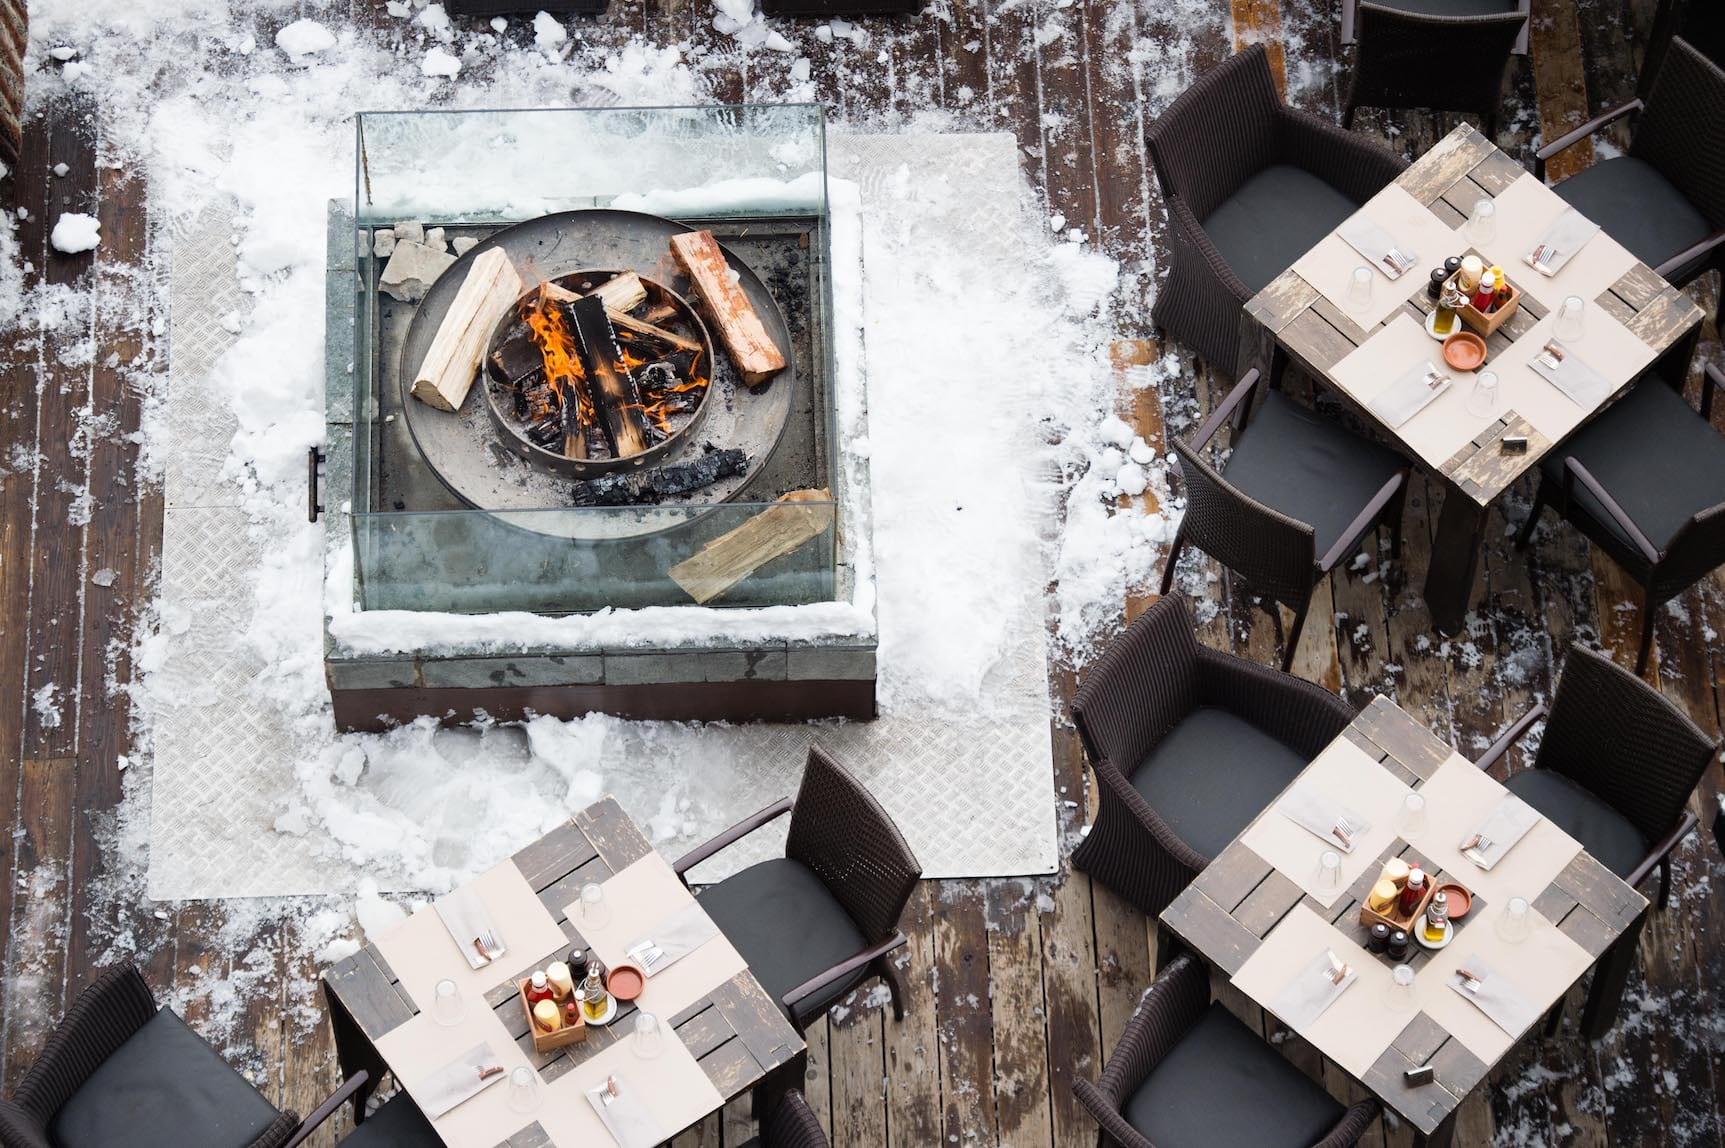 fire-ice-from-above-portetta-amy-murrell